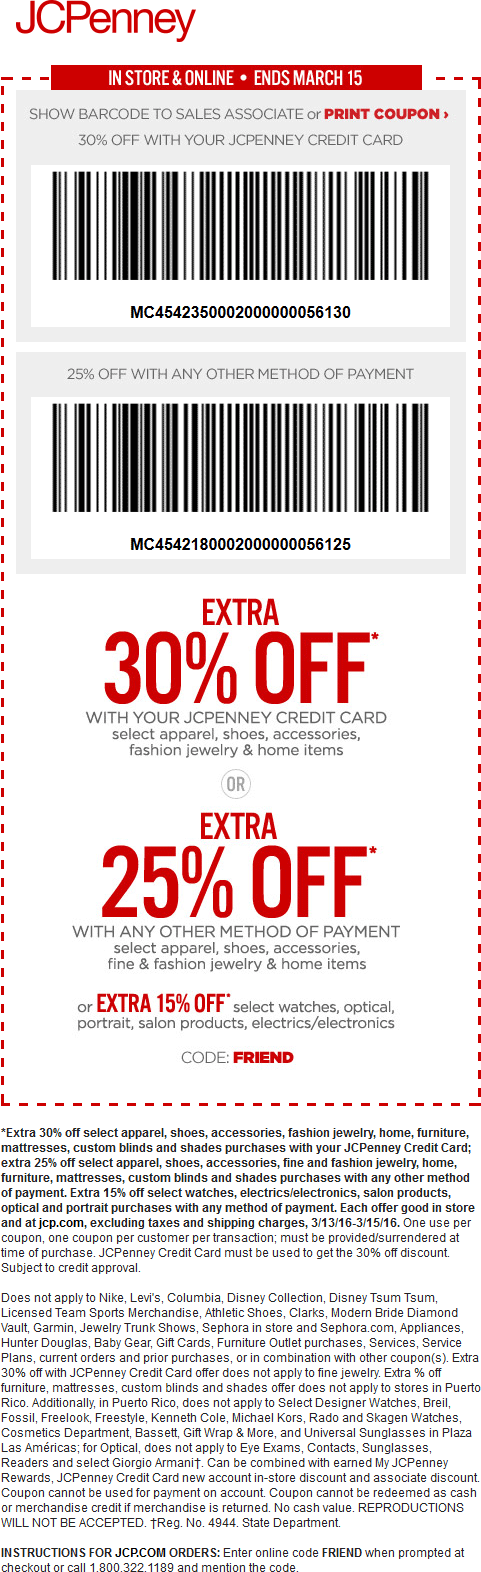 JCPenney Coupon January 2018 25% off at JCPenney, or online via promo code FRIEND